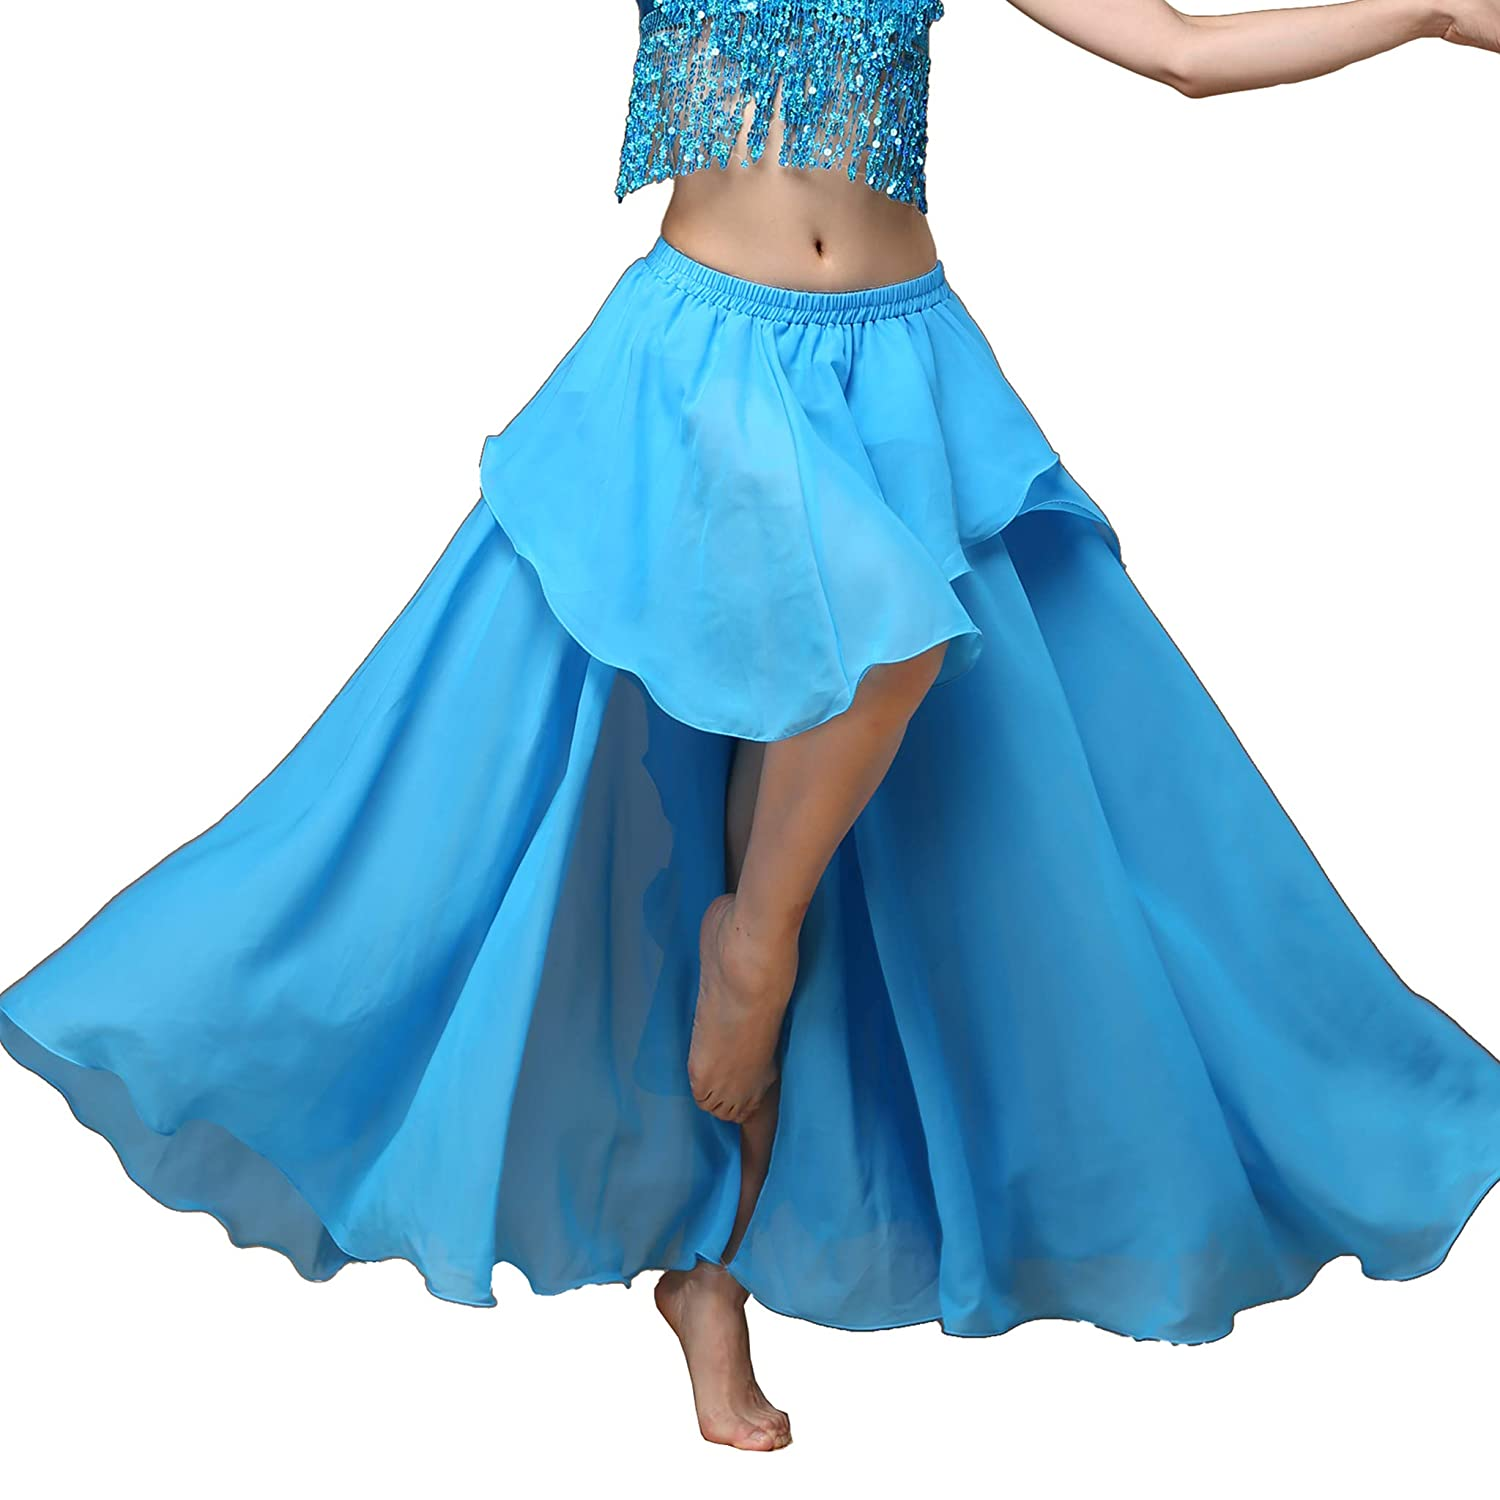 Details about  /DEEP PINK Satin Full Circle Maxi Skirt Belly Dancing Clothing Tribal Costume